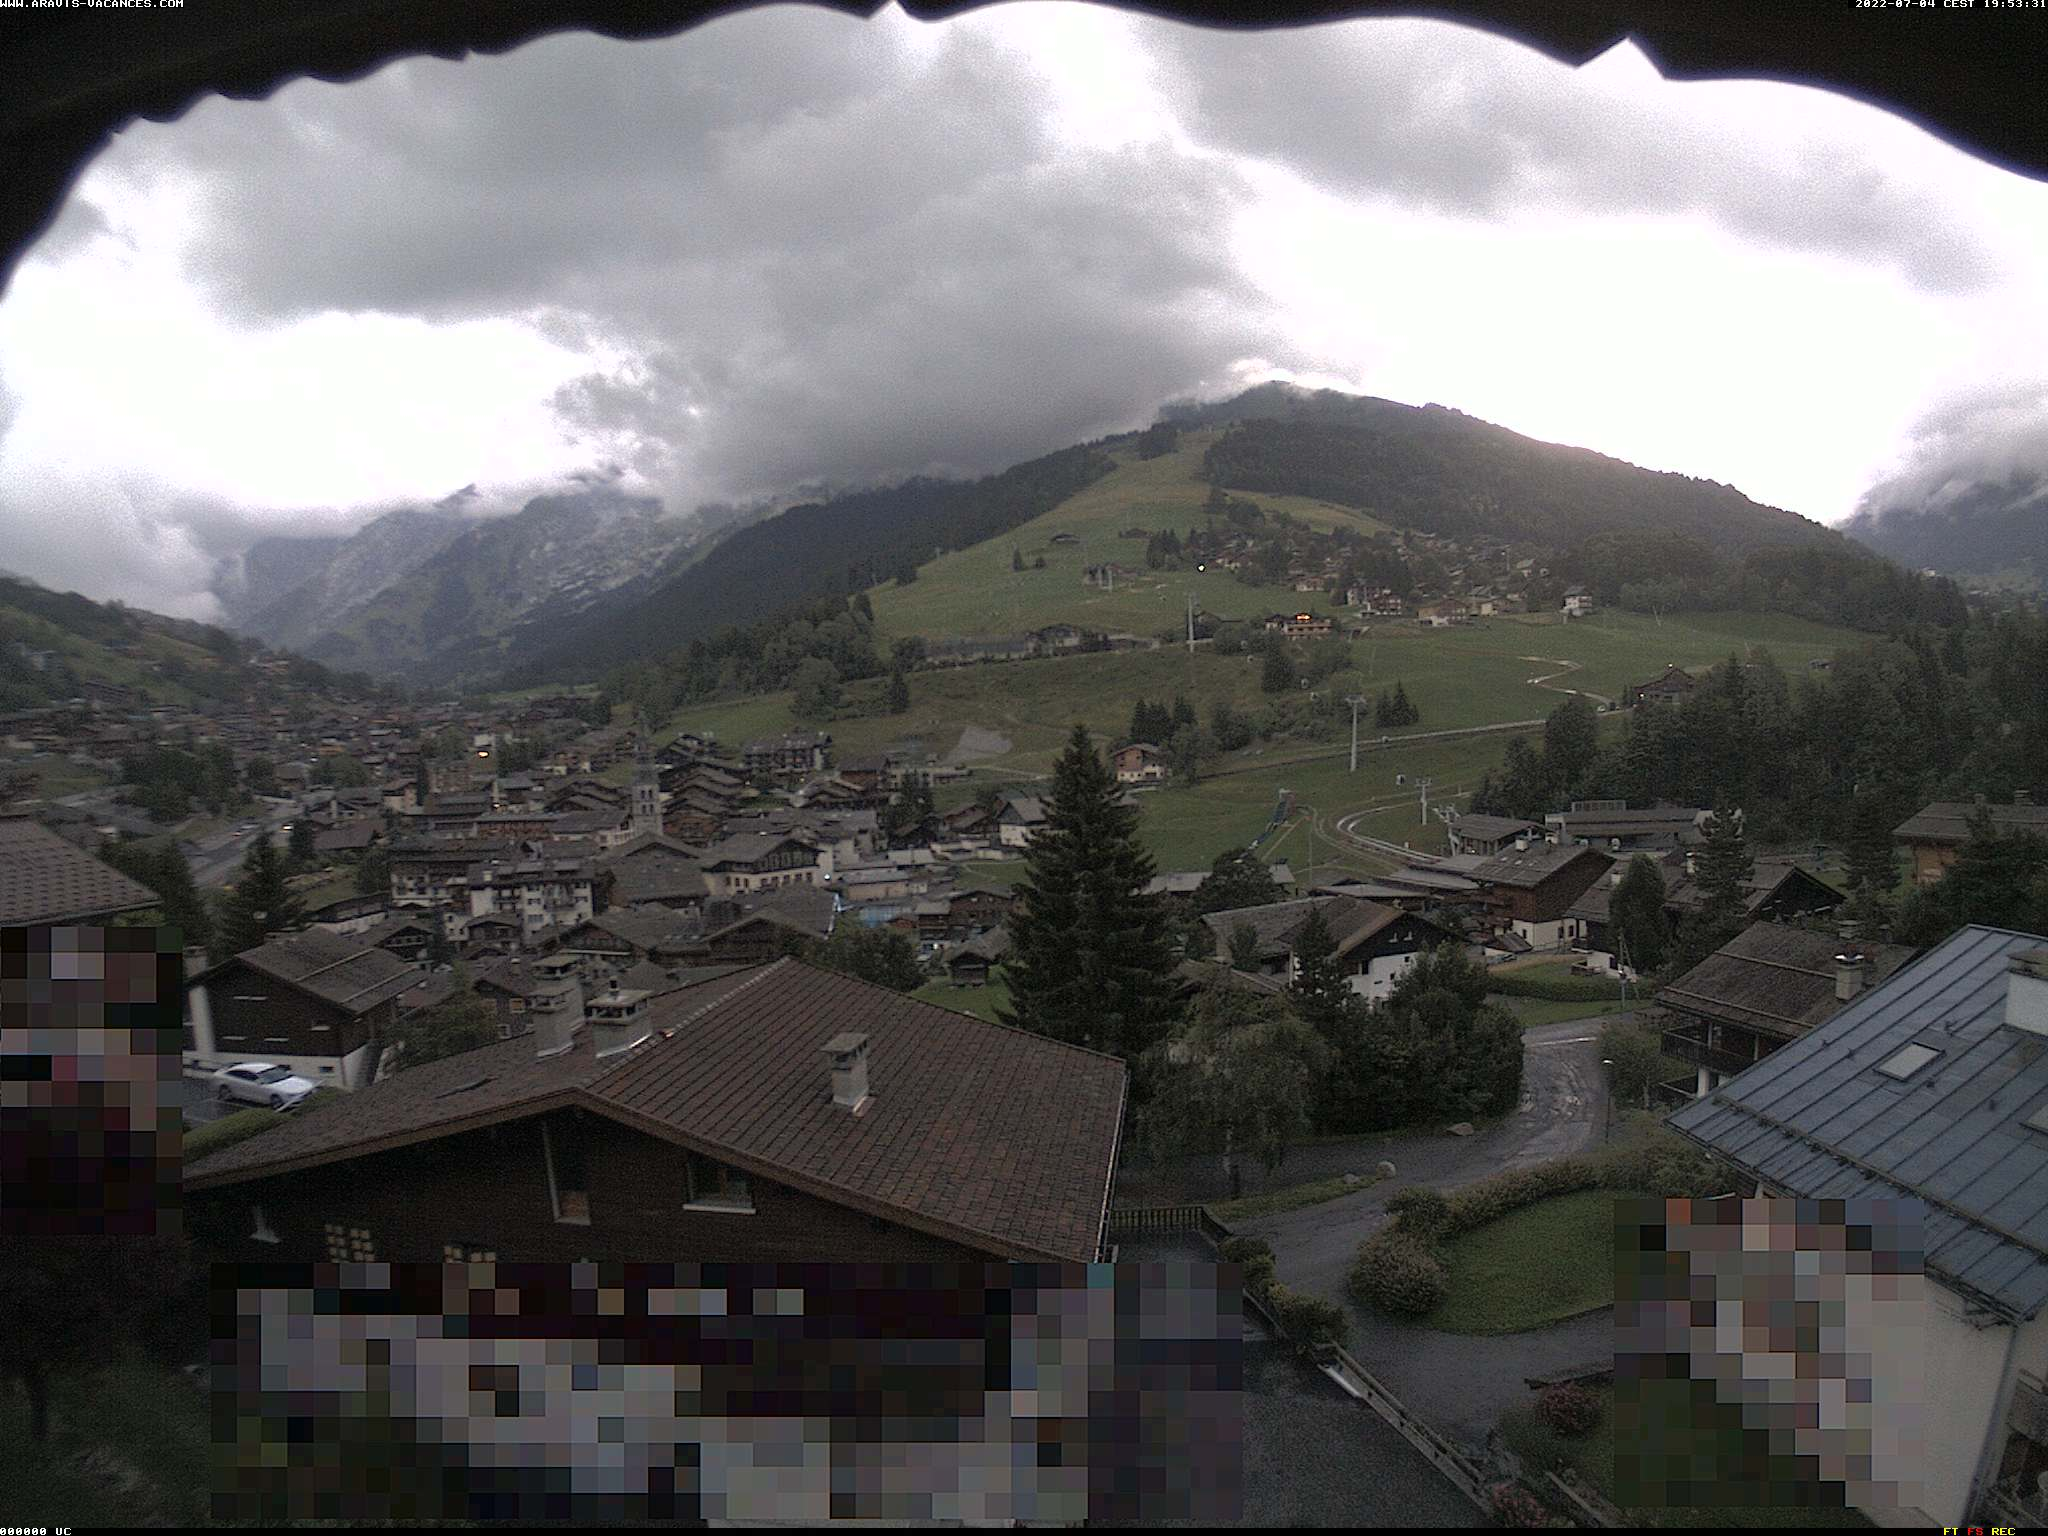 Web Cam La Cluzaz La Clusaz Accommodation Ski Resort In The French Alps For